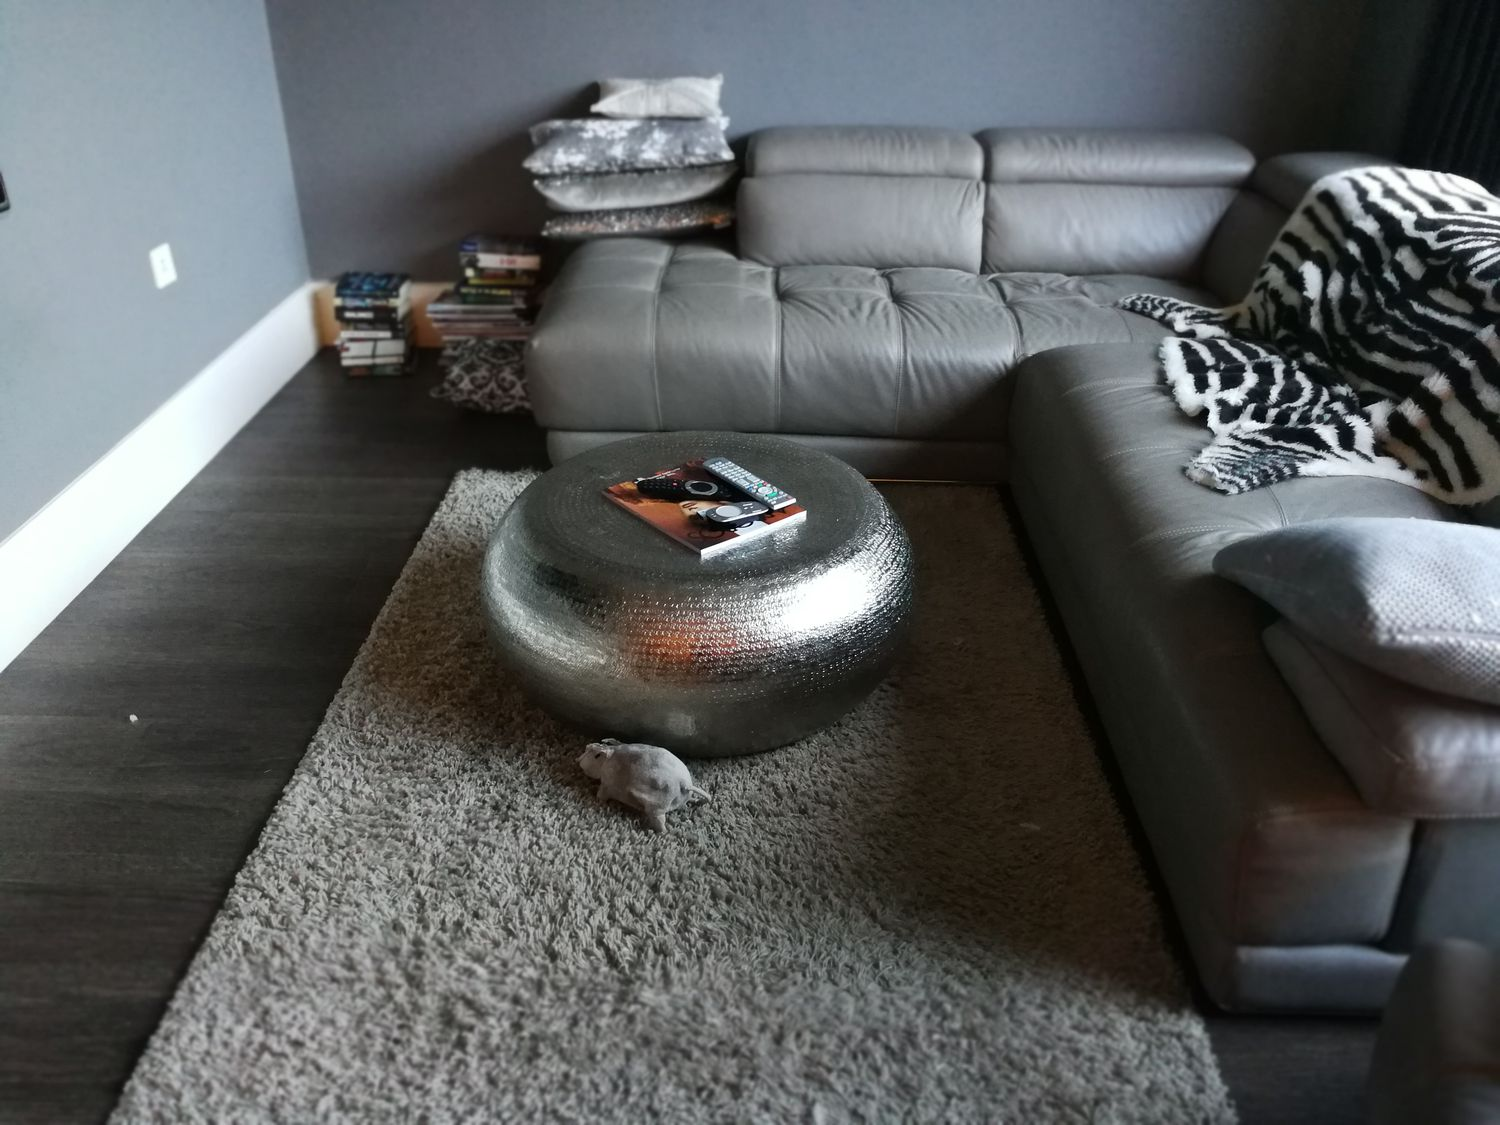 A photo of the same sofa and coffee table, with no mirror, cushions, rug or throws.